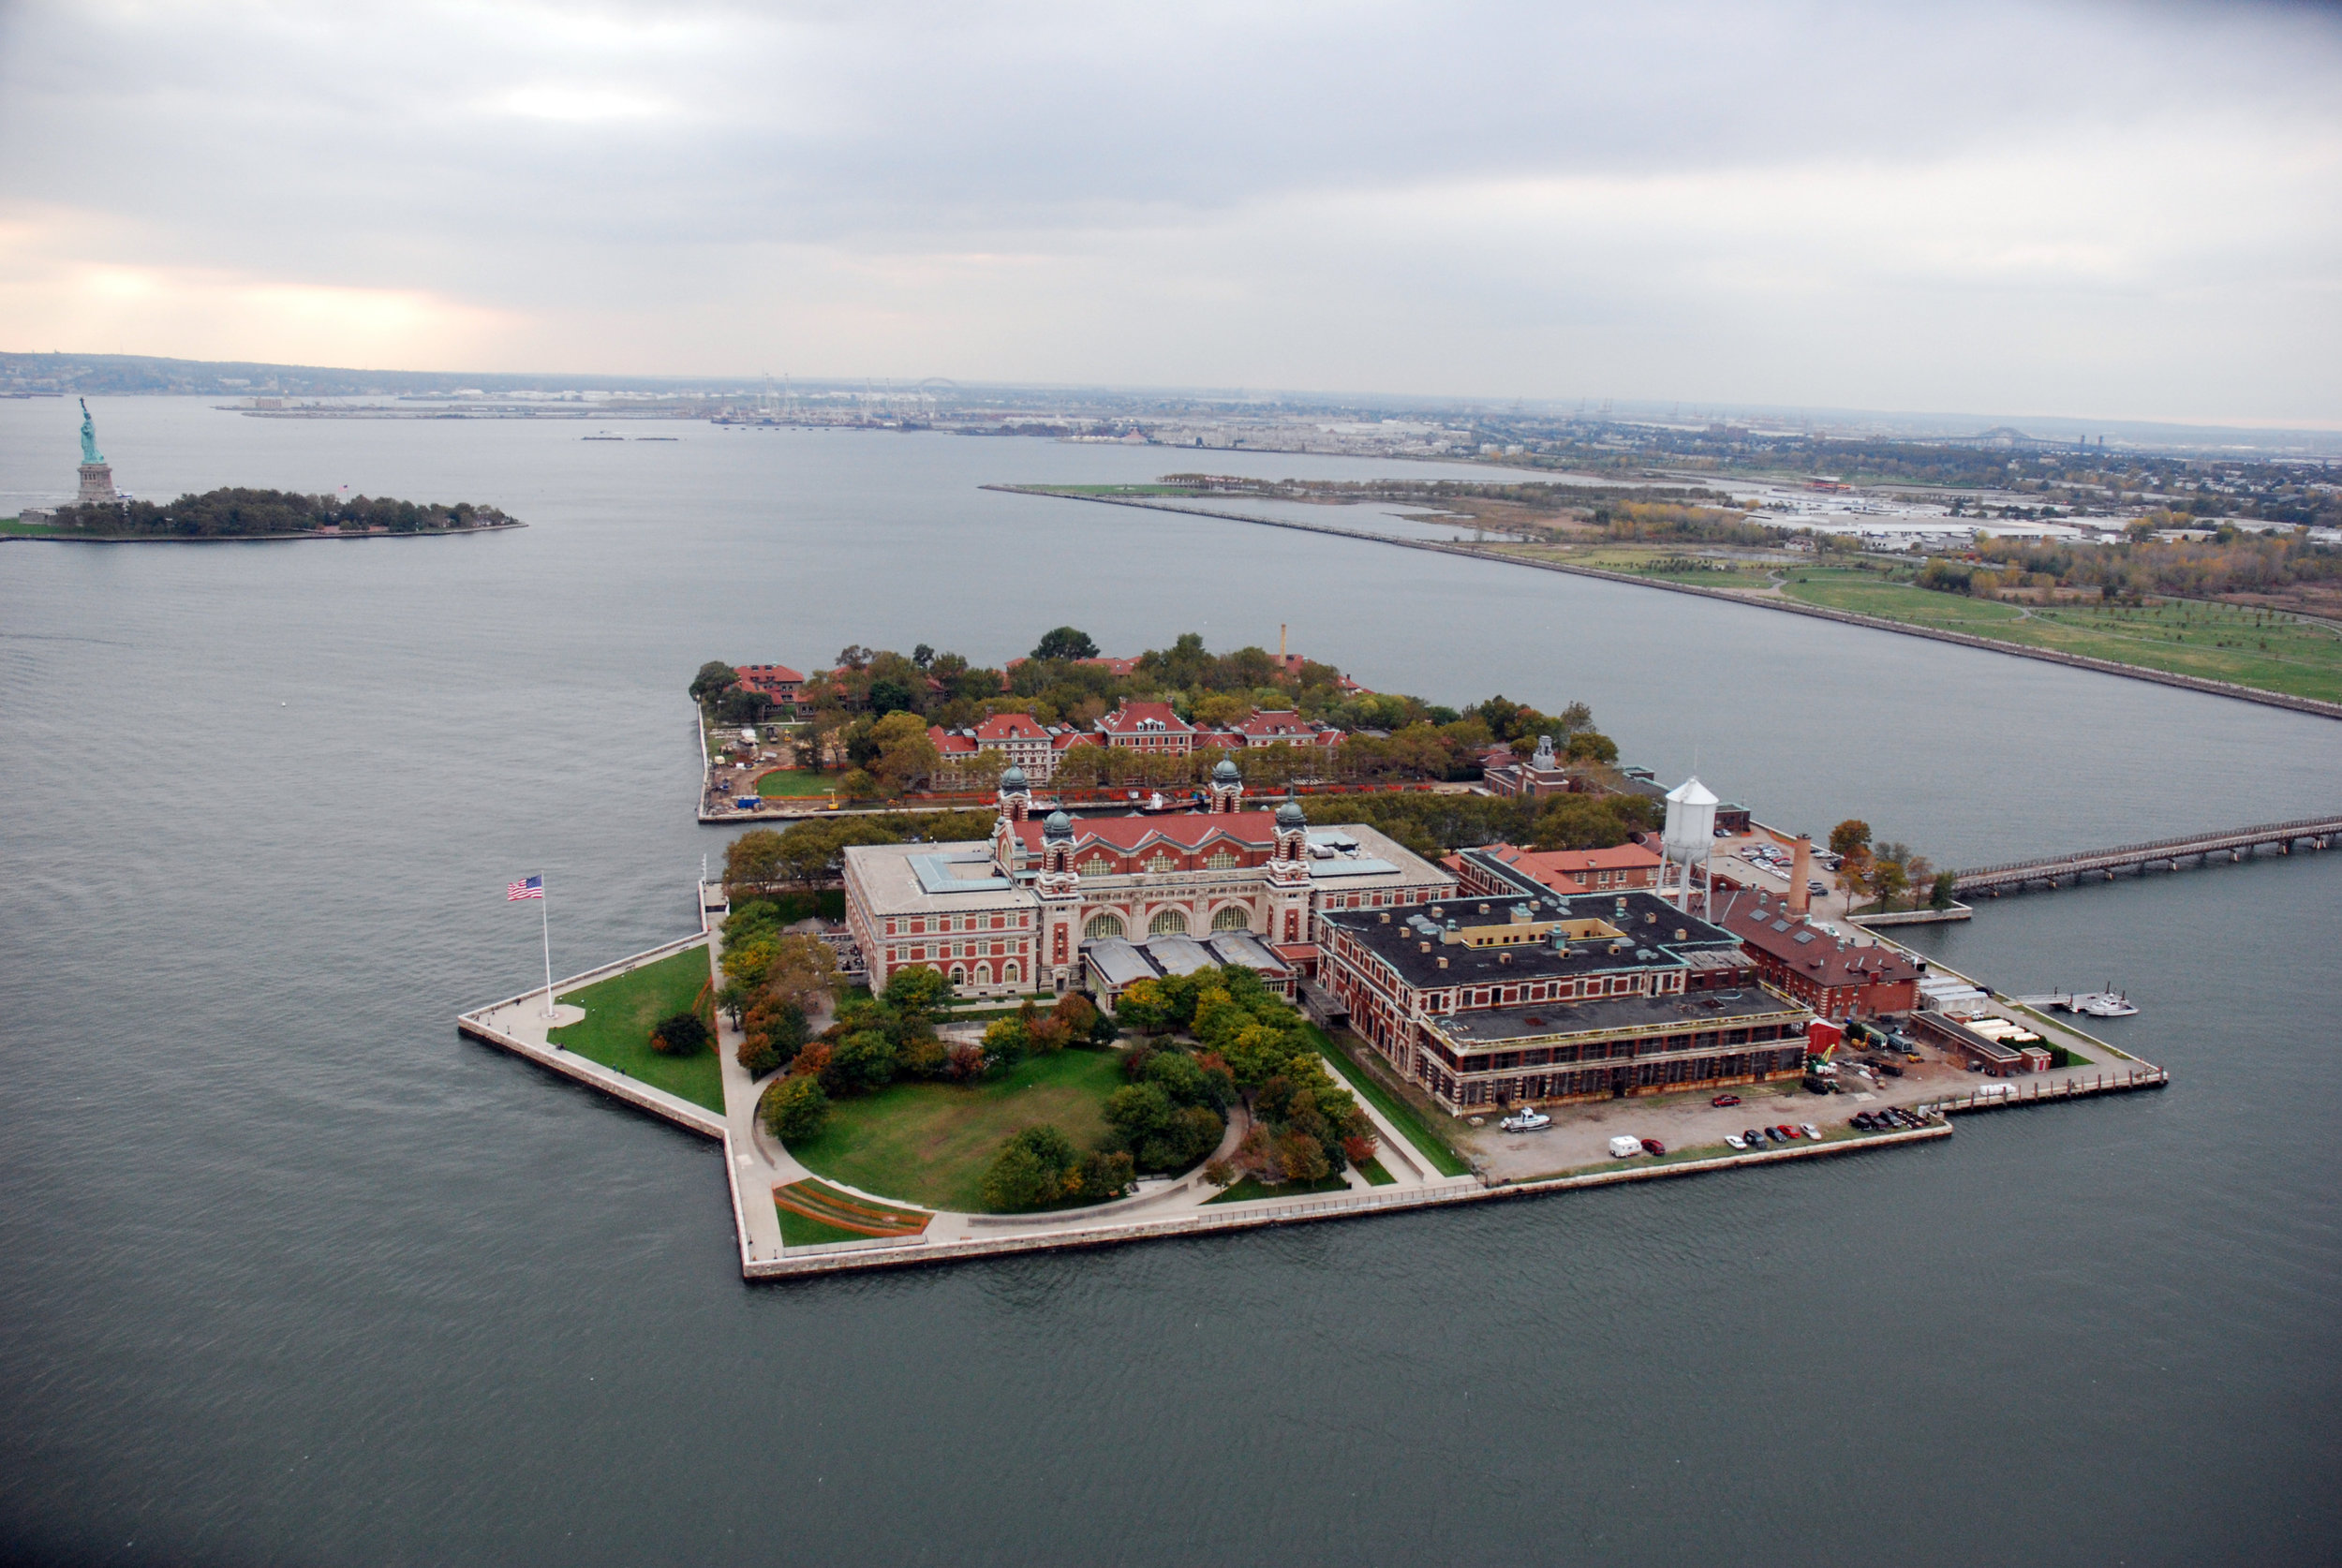 ellisisland_large.jpg